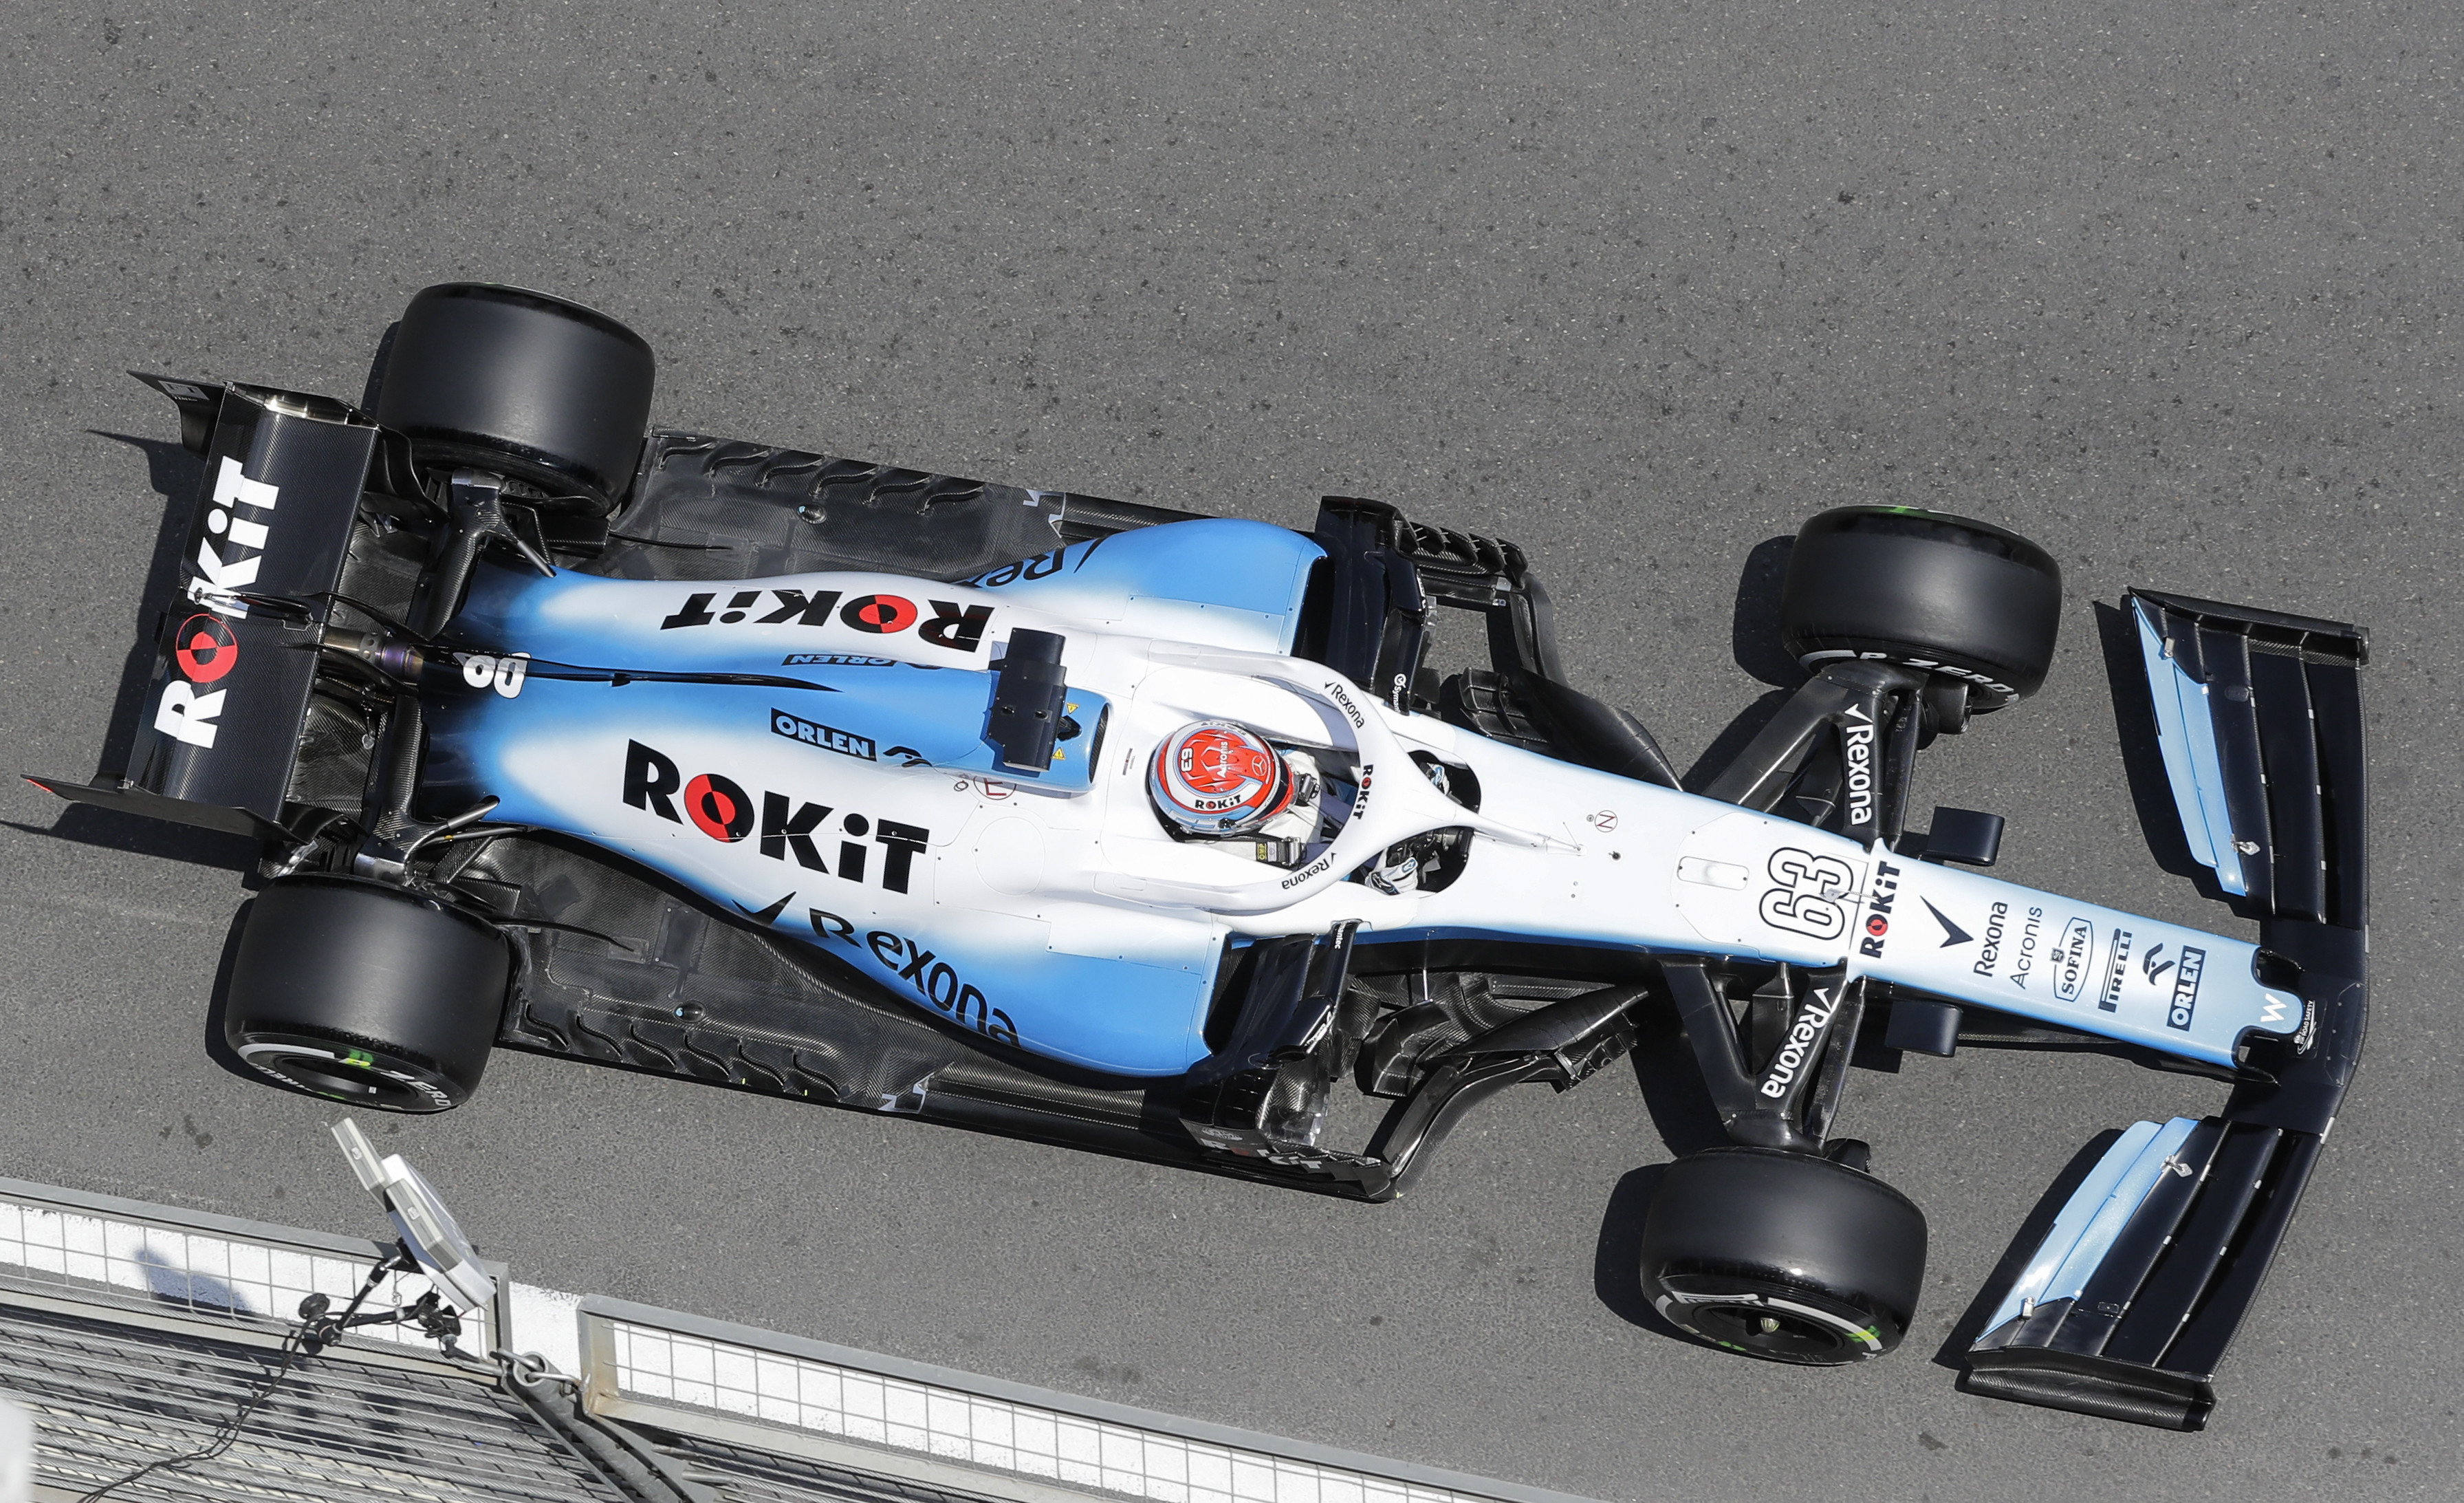 Williams have yet to score a point this season, but things went from bad to worse after George Russell's car hit a loose manhole in Friday's practice in Azerbaijan